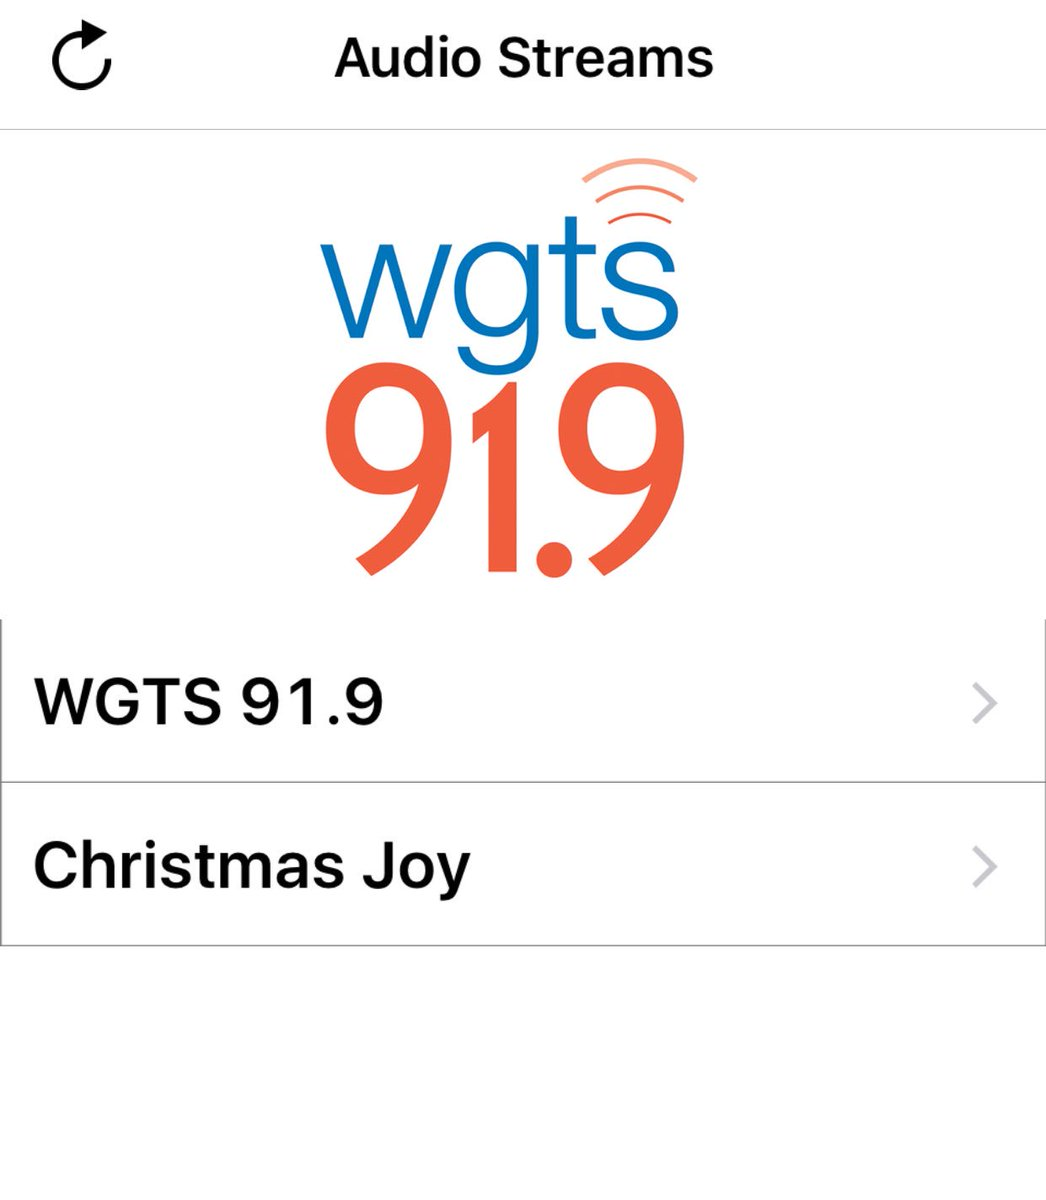 Streaming Christmas Music.Wgts 91 9 On Twitter We Love Christmas Music We Re